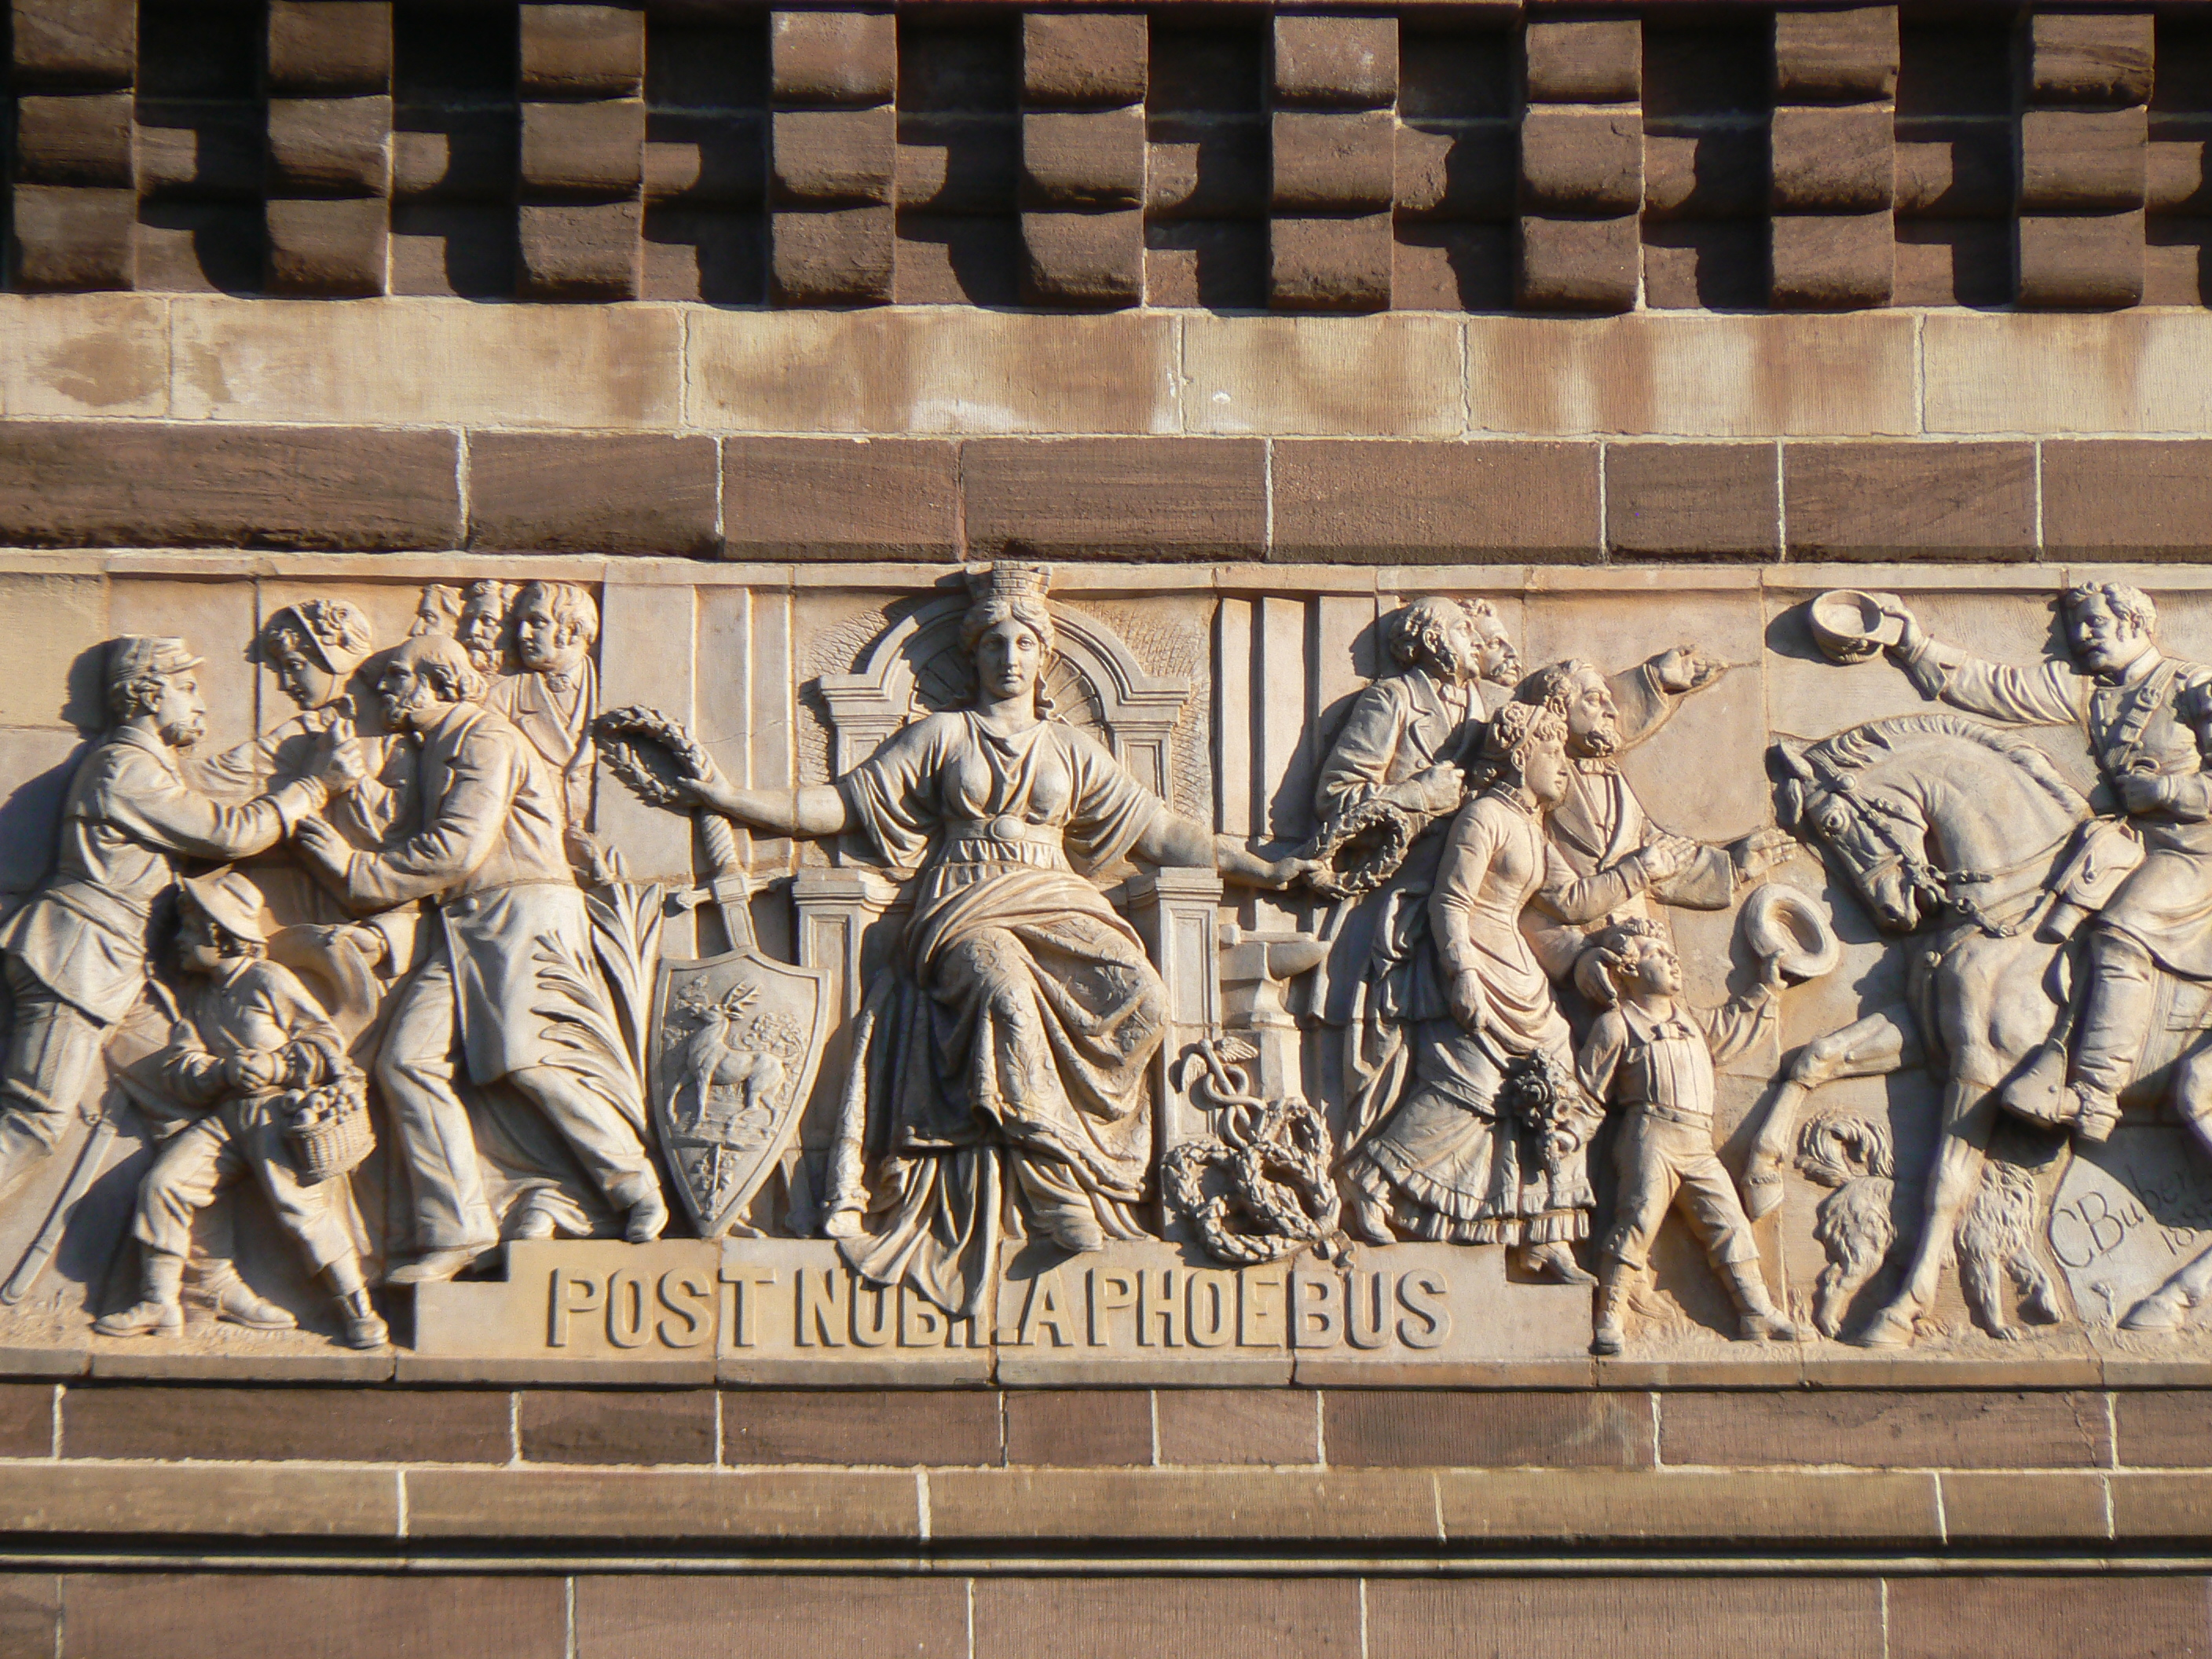 The south side frieze depicting soldiers and sailors returning home from the ware.